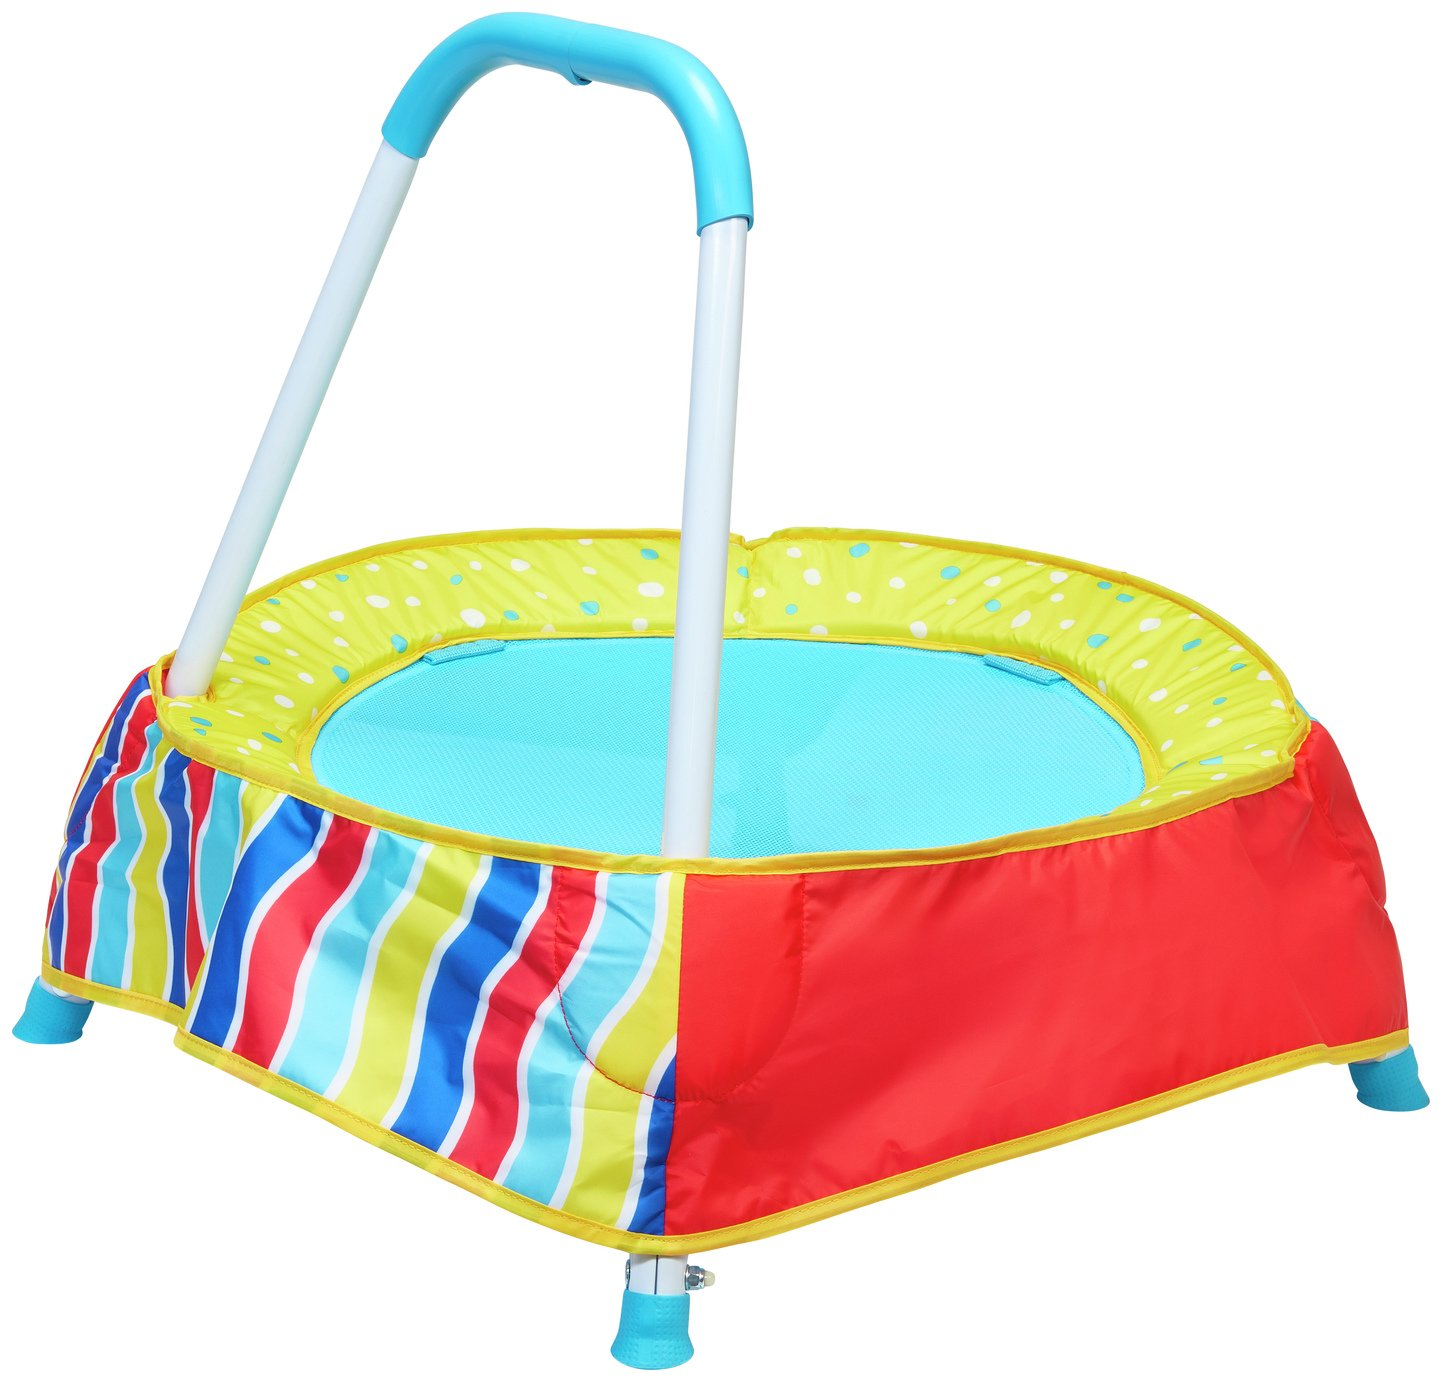 Chad Valley Toddler 2 Ft. Trampoline - Multicoloured